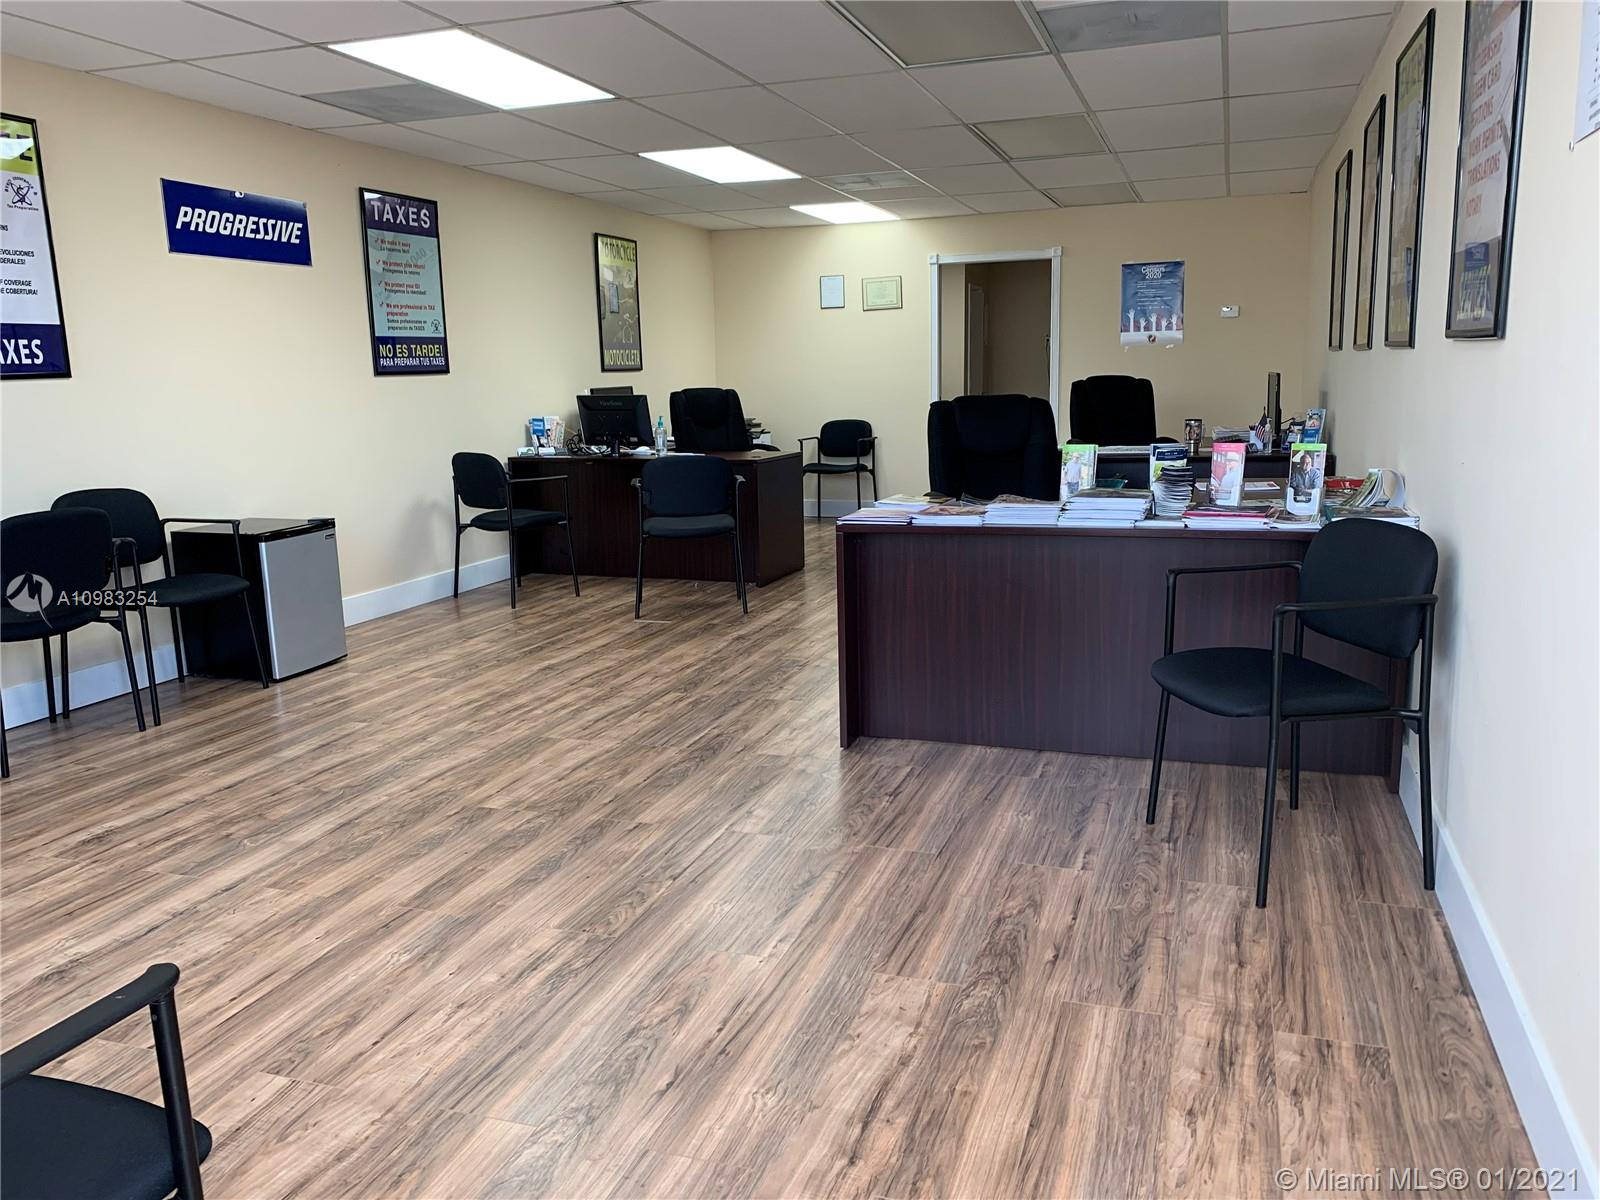 5634 Johnson St, Hollywood, Florida 33021, ,Commercial Sale,For Sale,5634 Johnson St,A10983254